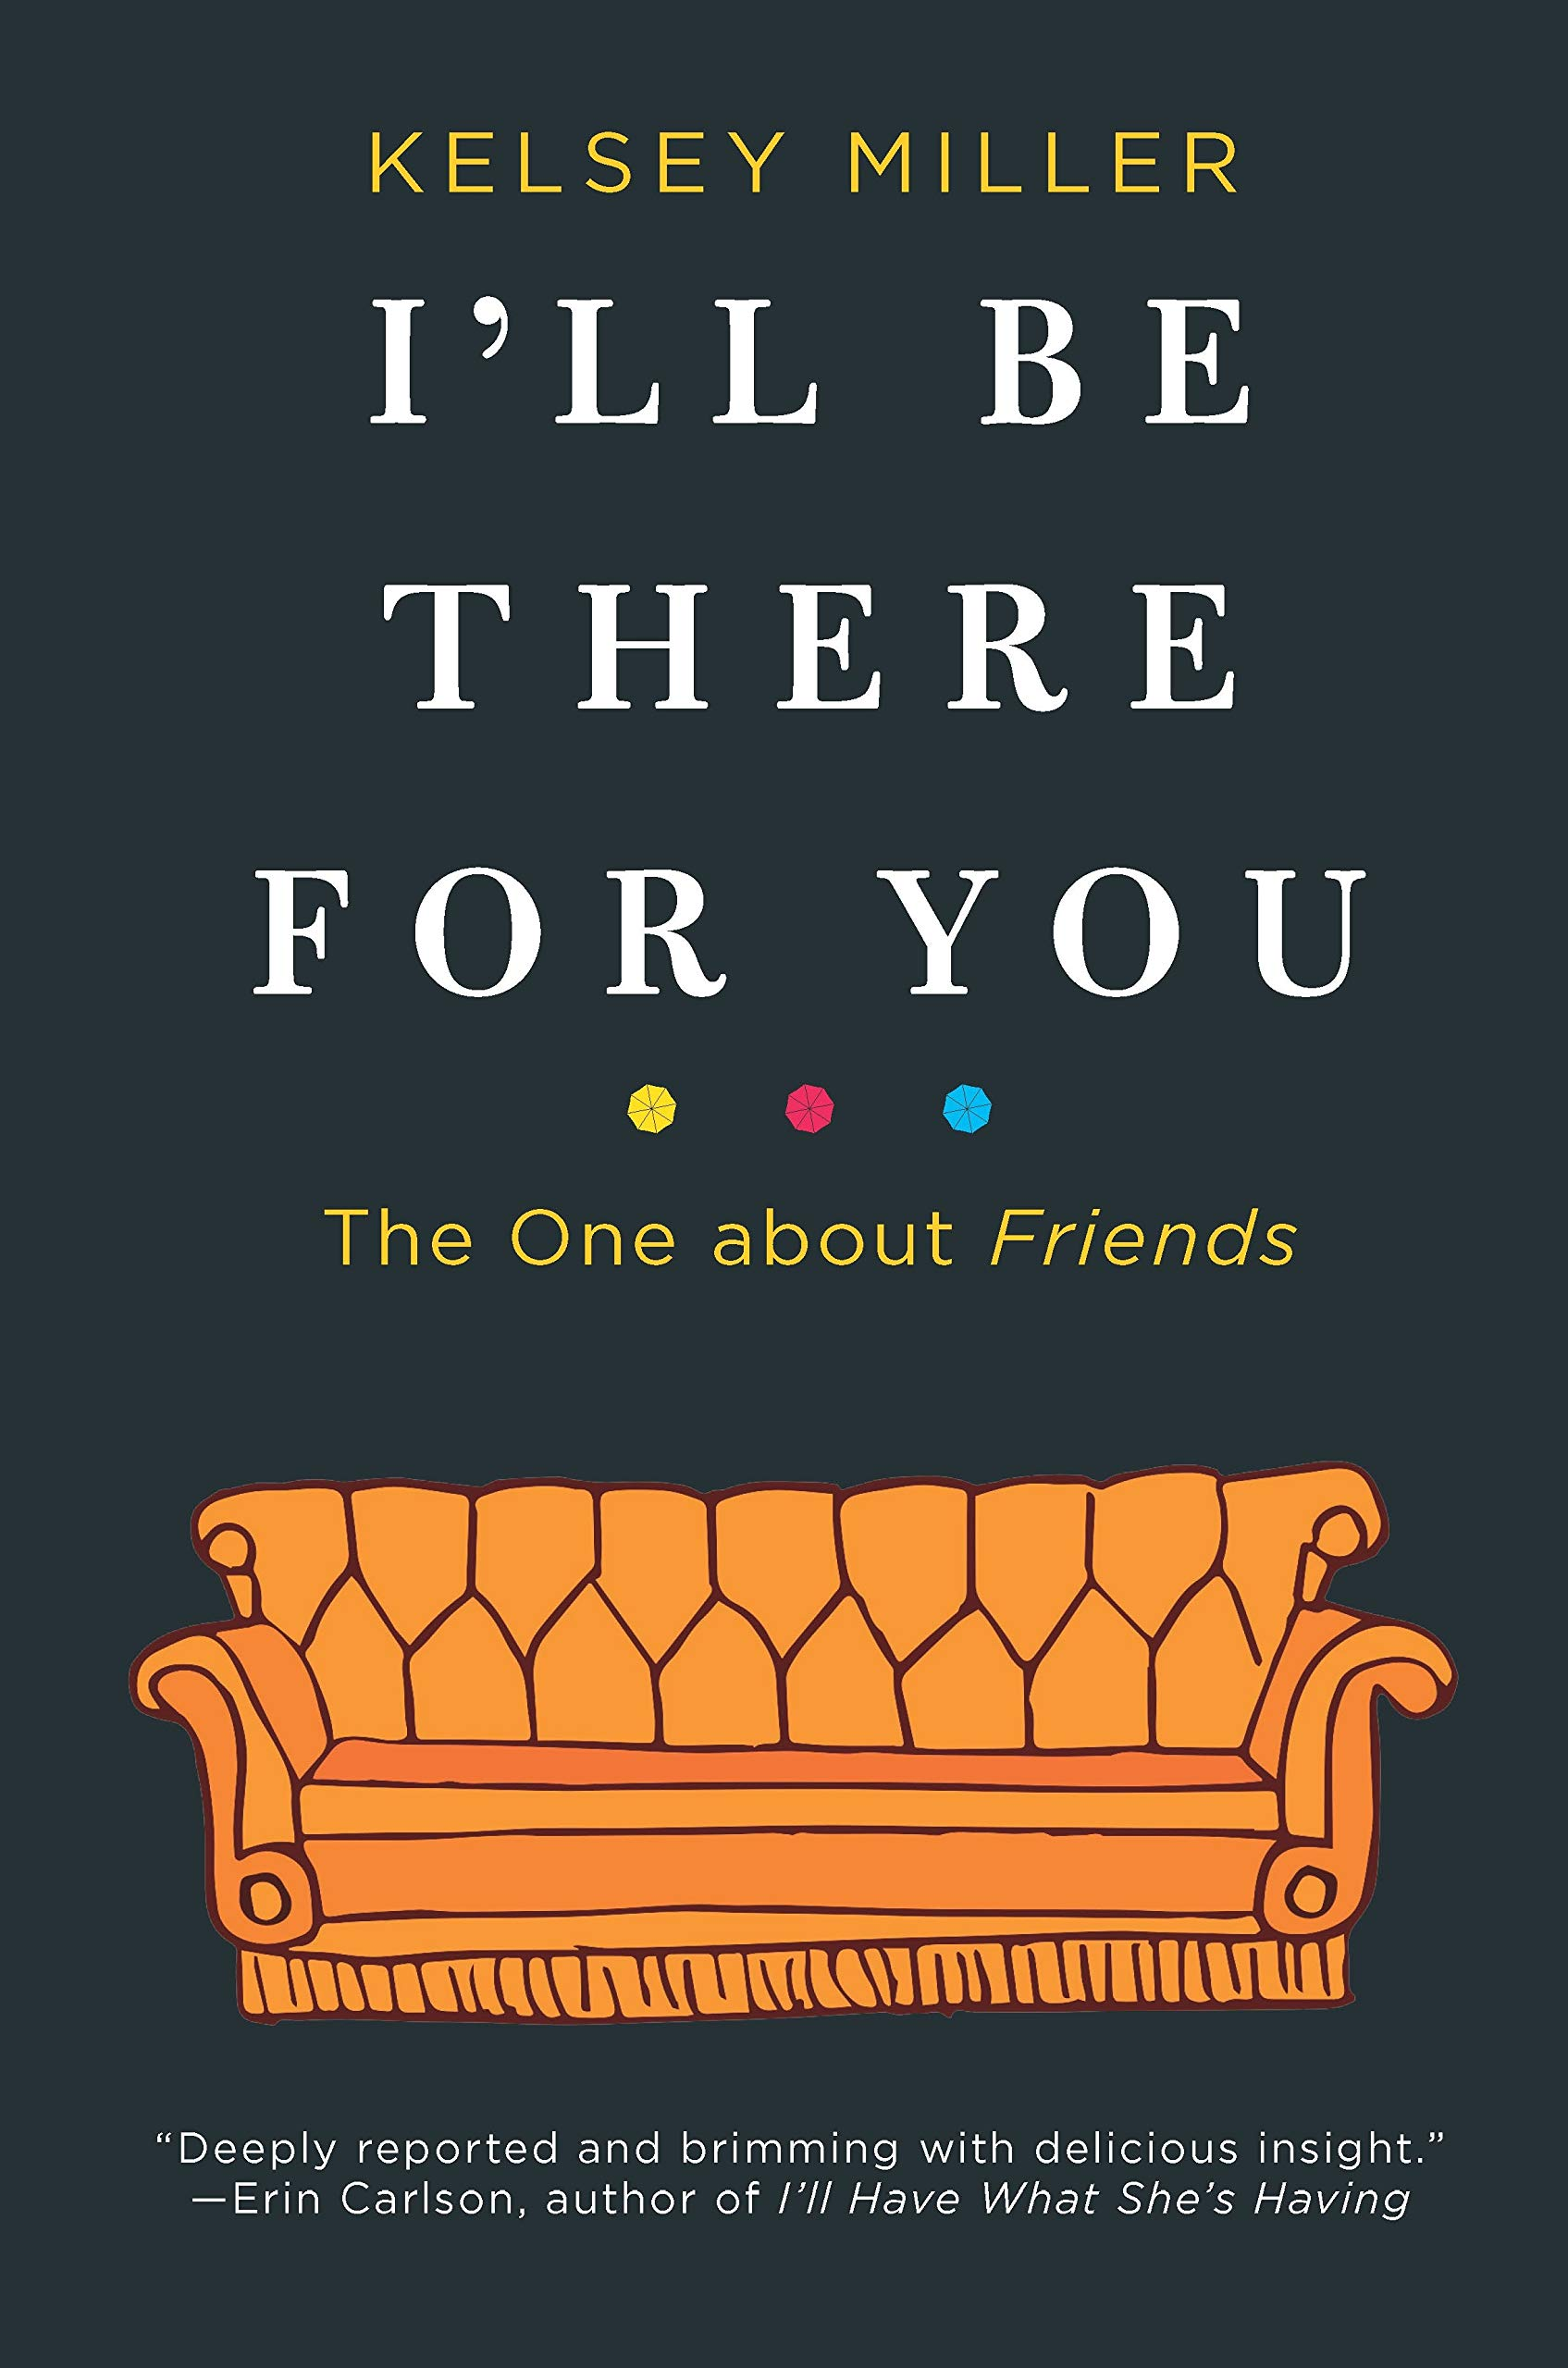 a815f2c514933 Amazon.com: I'll Be There for You: The One about Friends ...